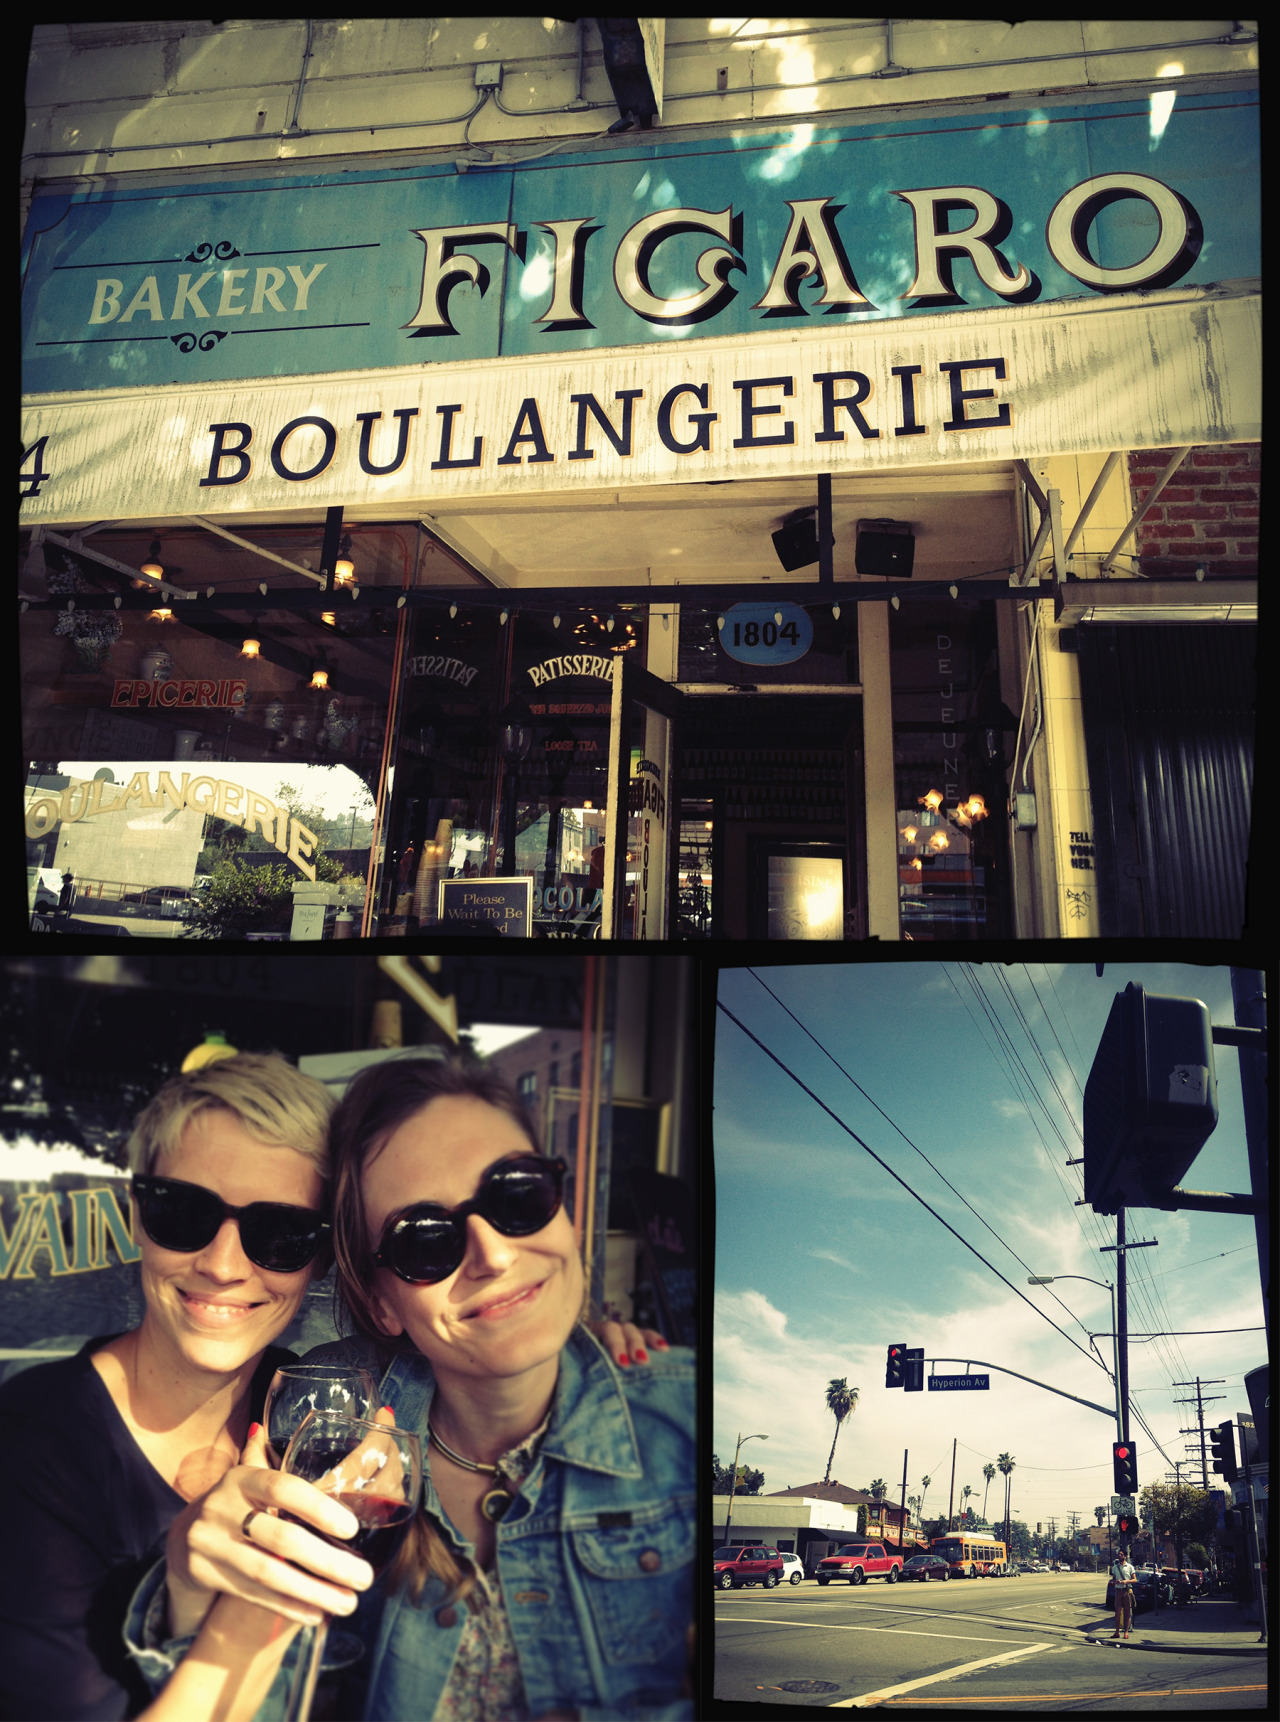 Friday afternoon fun in Los Feliz!